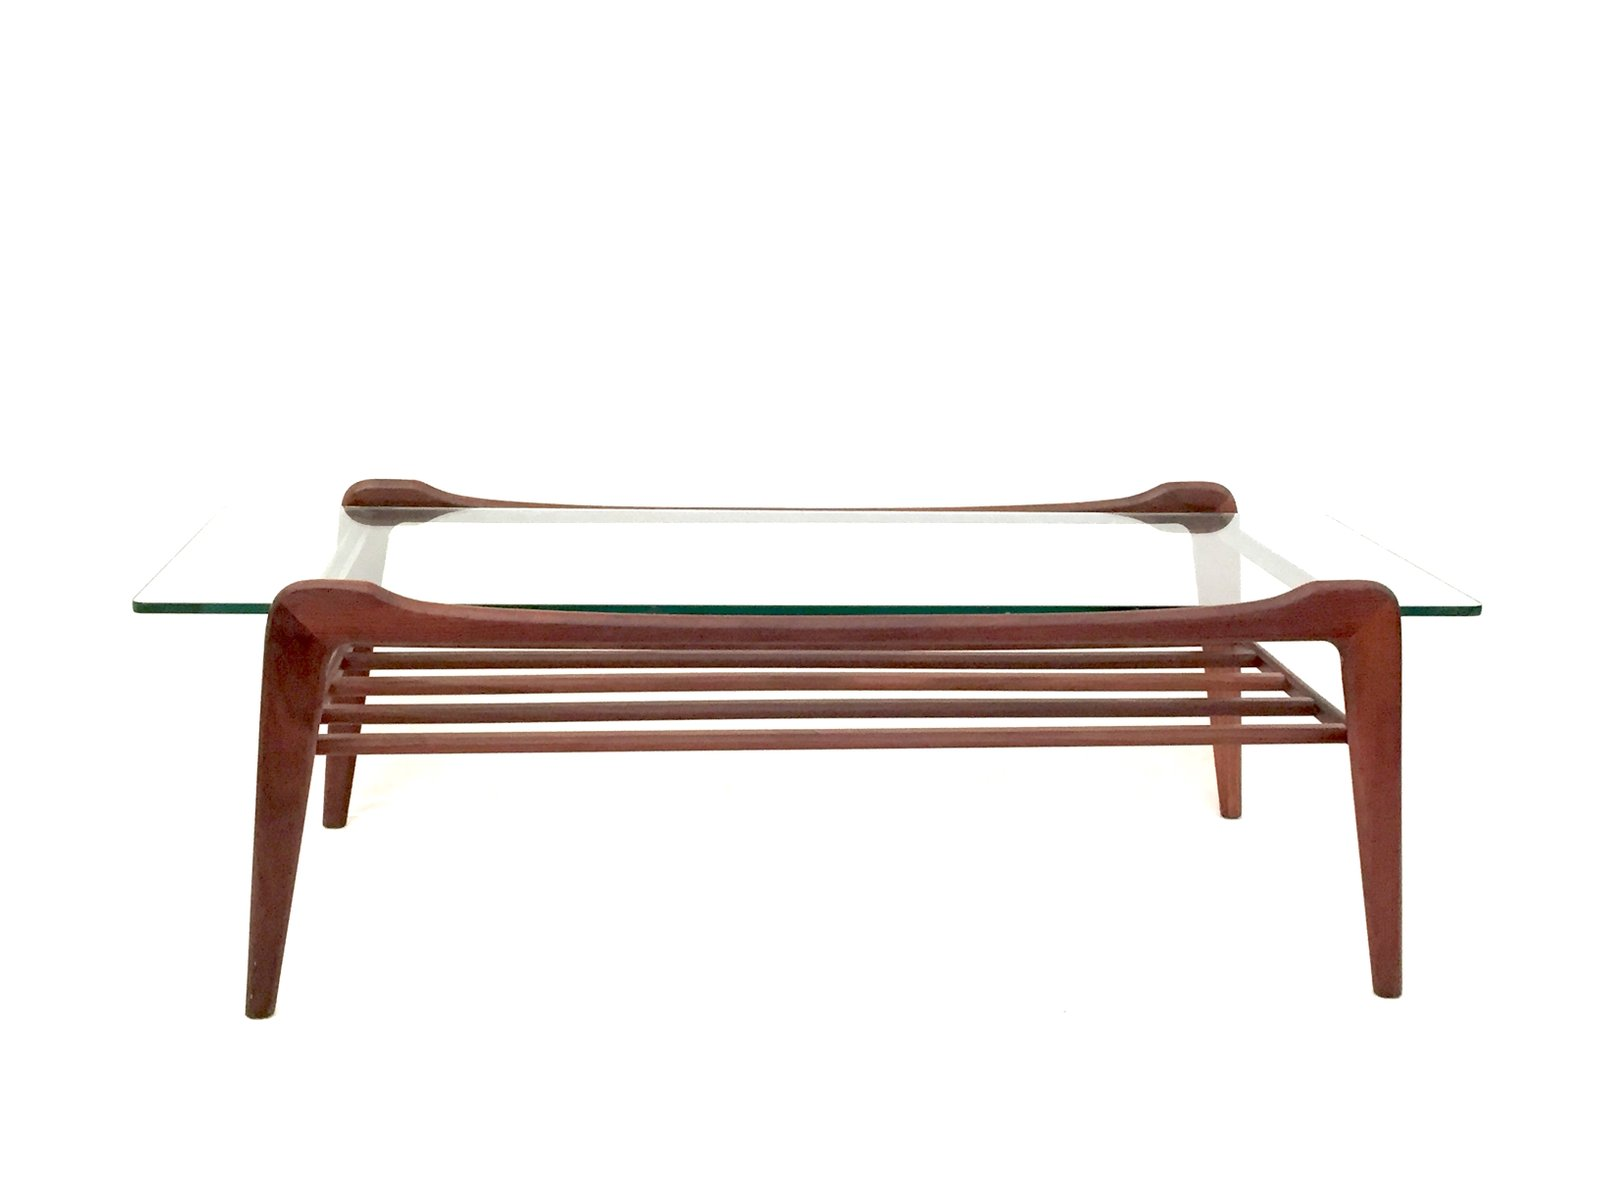 Vintage Teak Glass Coffee Table From G Plan 1970s For Sale At Pamono